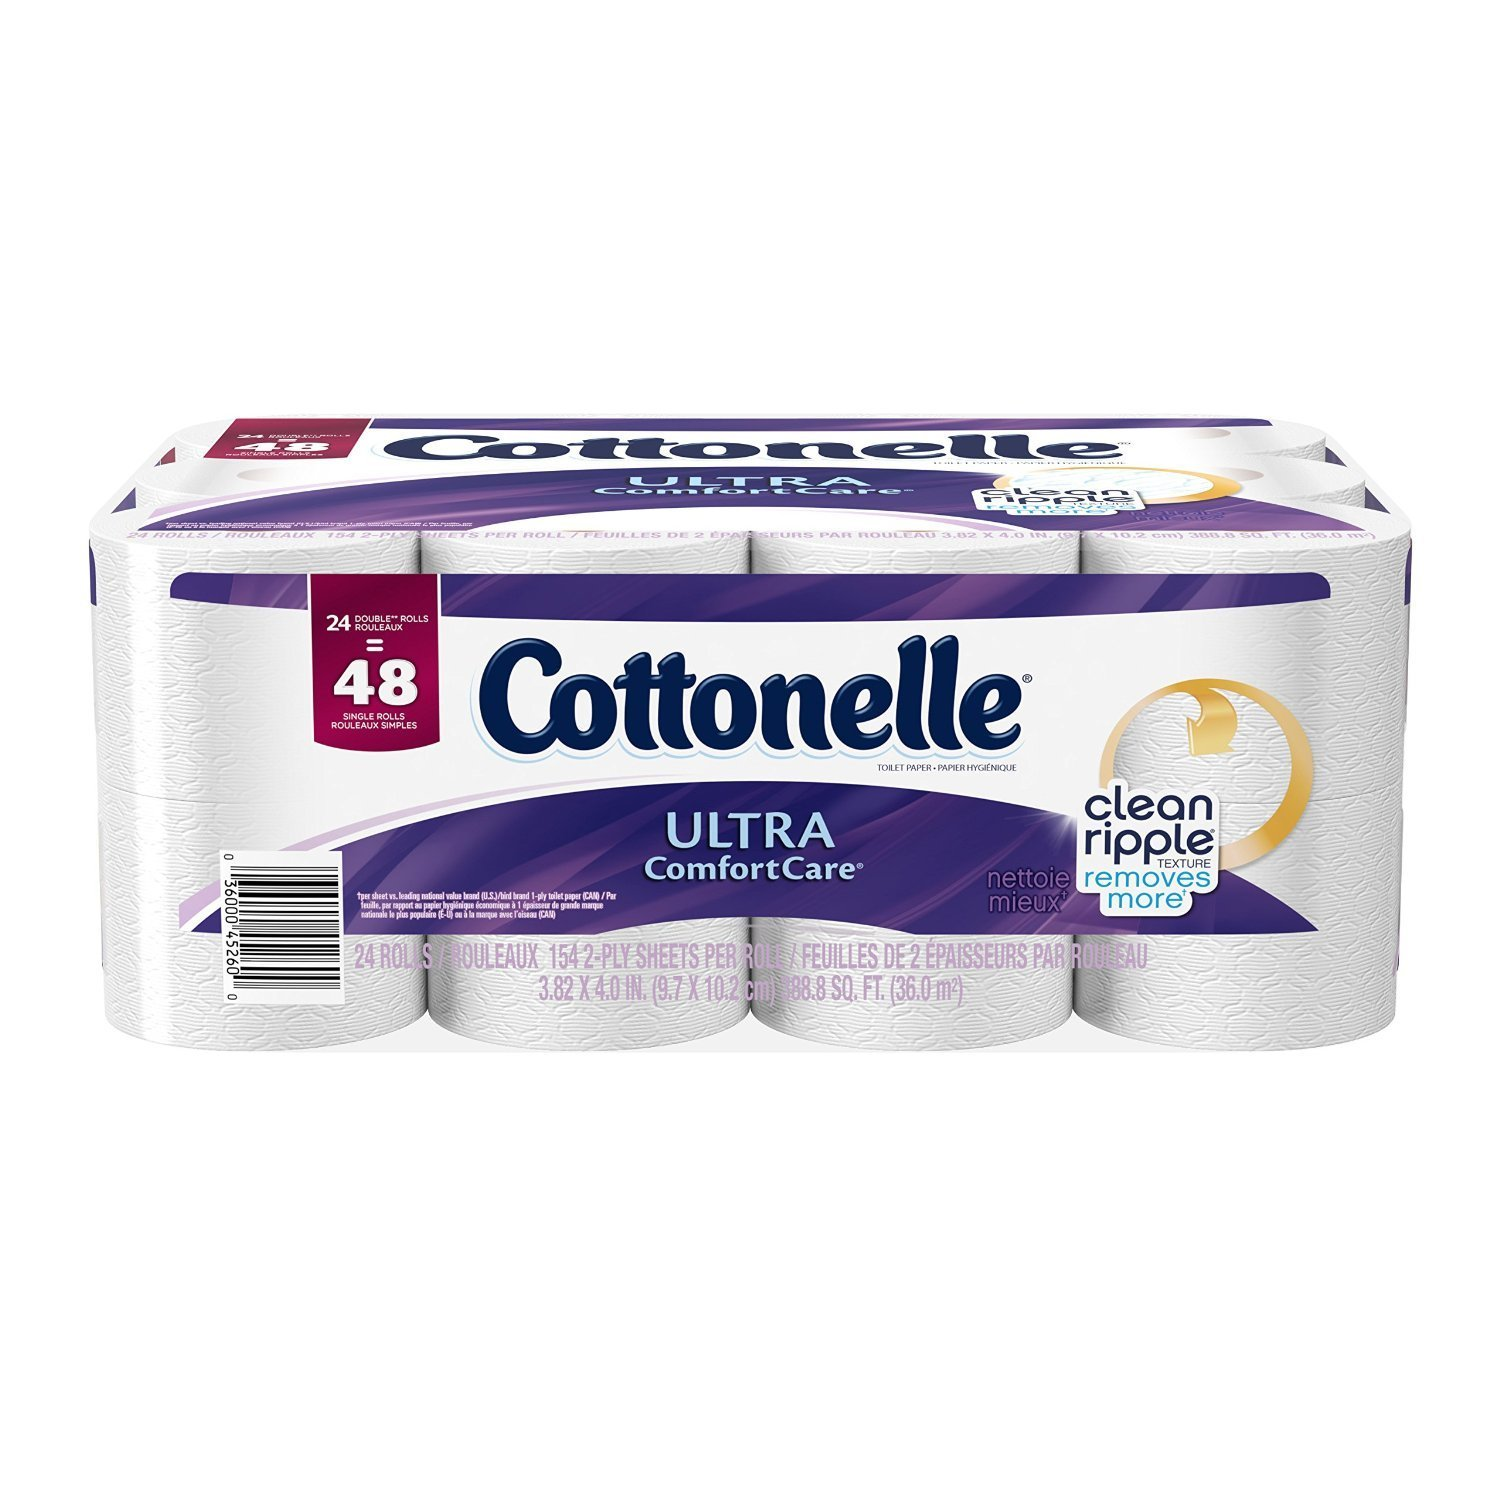 Cottonelle Ultra Comfort Care Double Roll Toilet Paper, 154 Sheets, 24 Count 38579